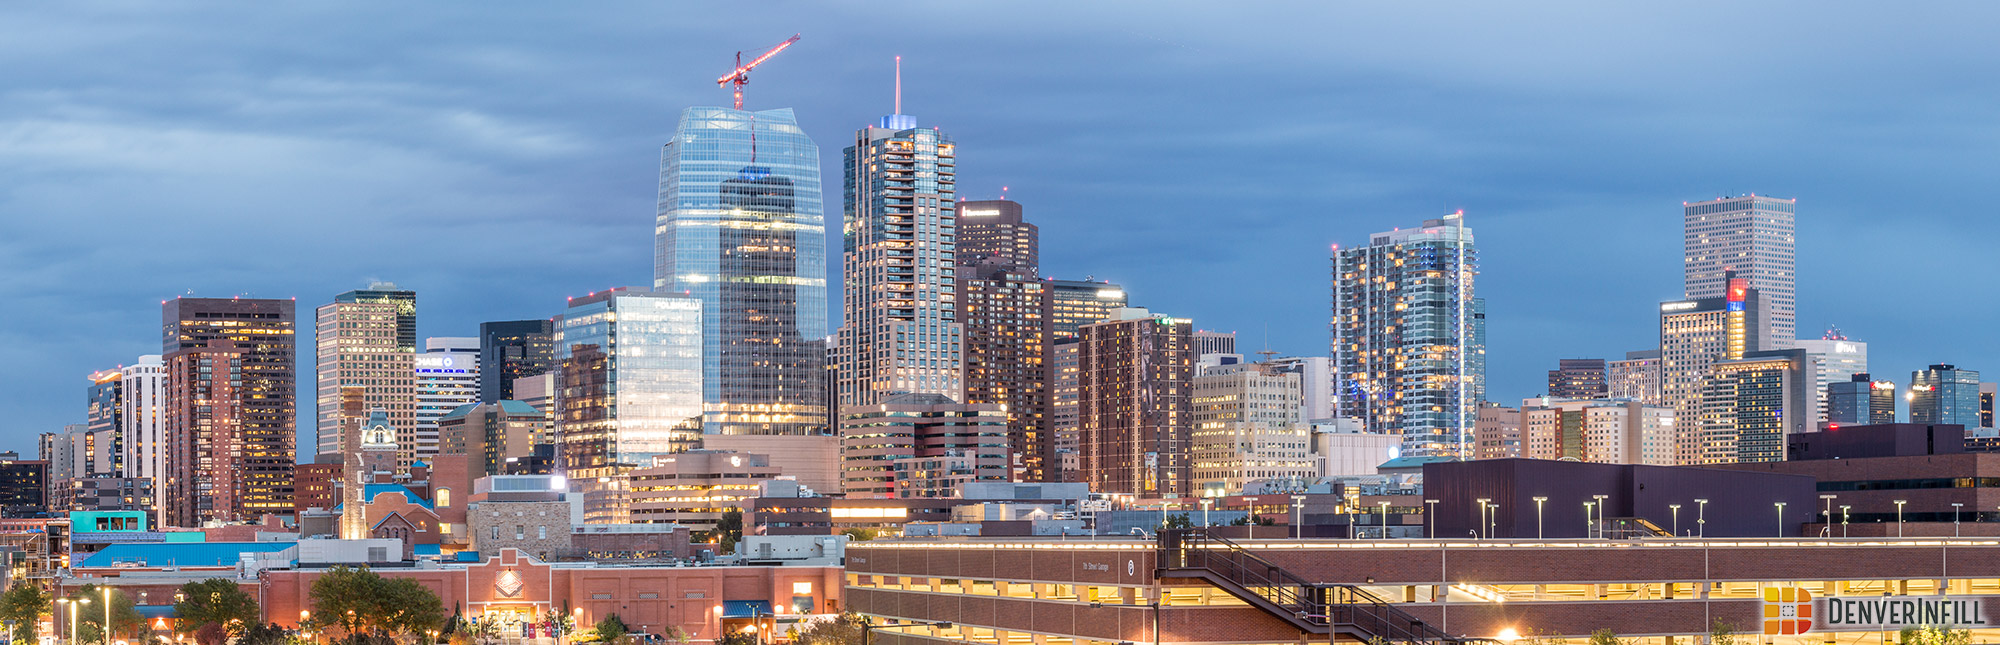 Downtown Denver skyline from Auraria Campus